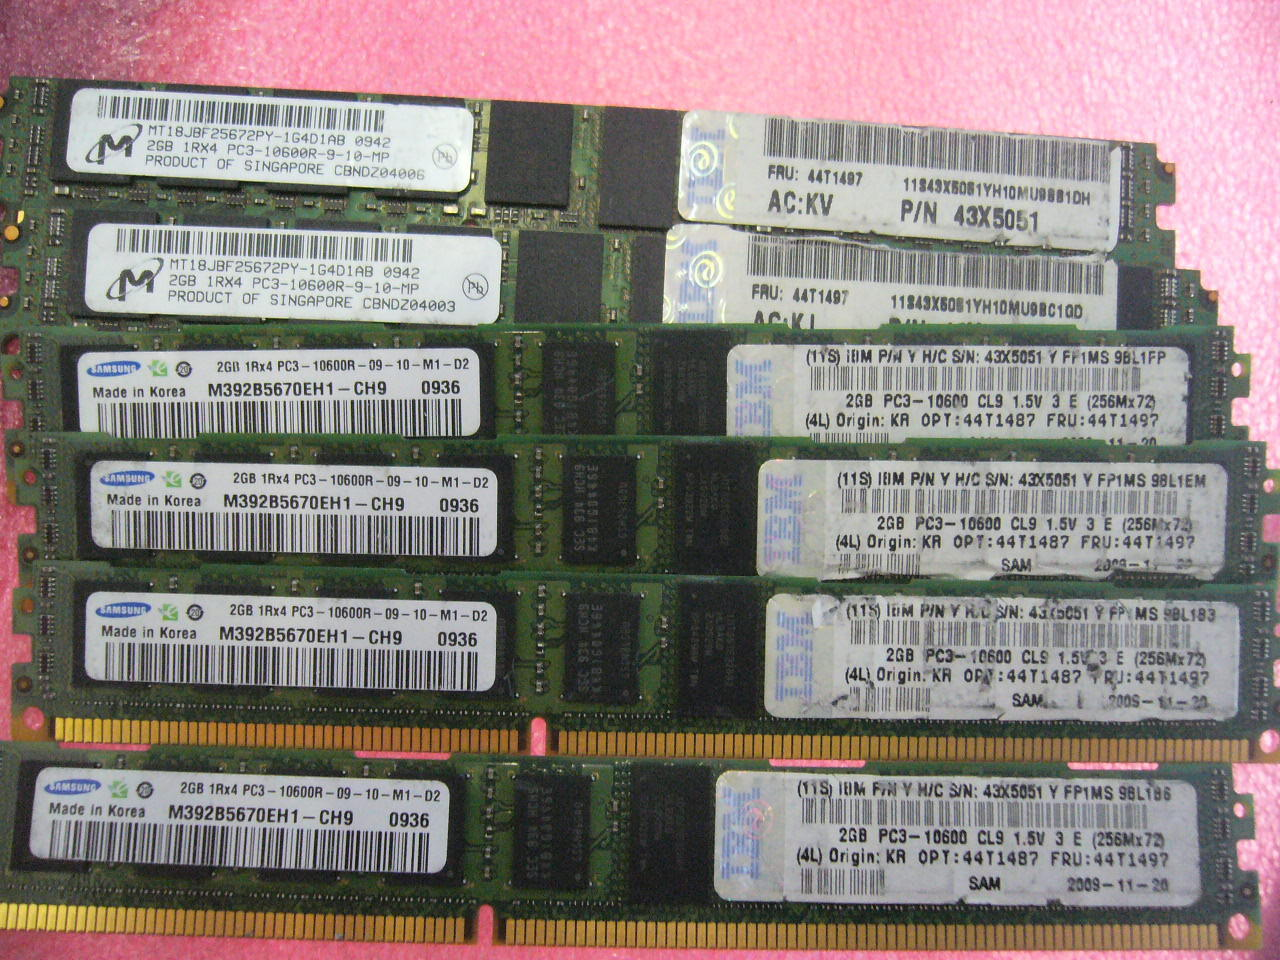 QTY 1x 2GB DDR3 PC3-10600R ECC Registered memory IBM P/N 43X5051